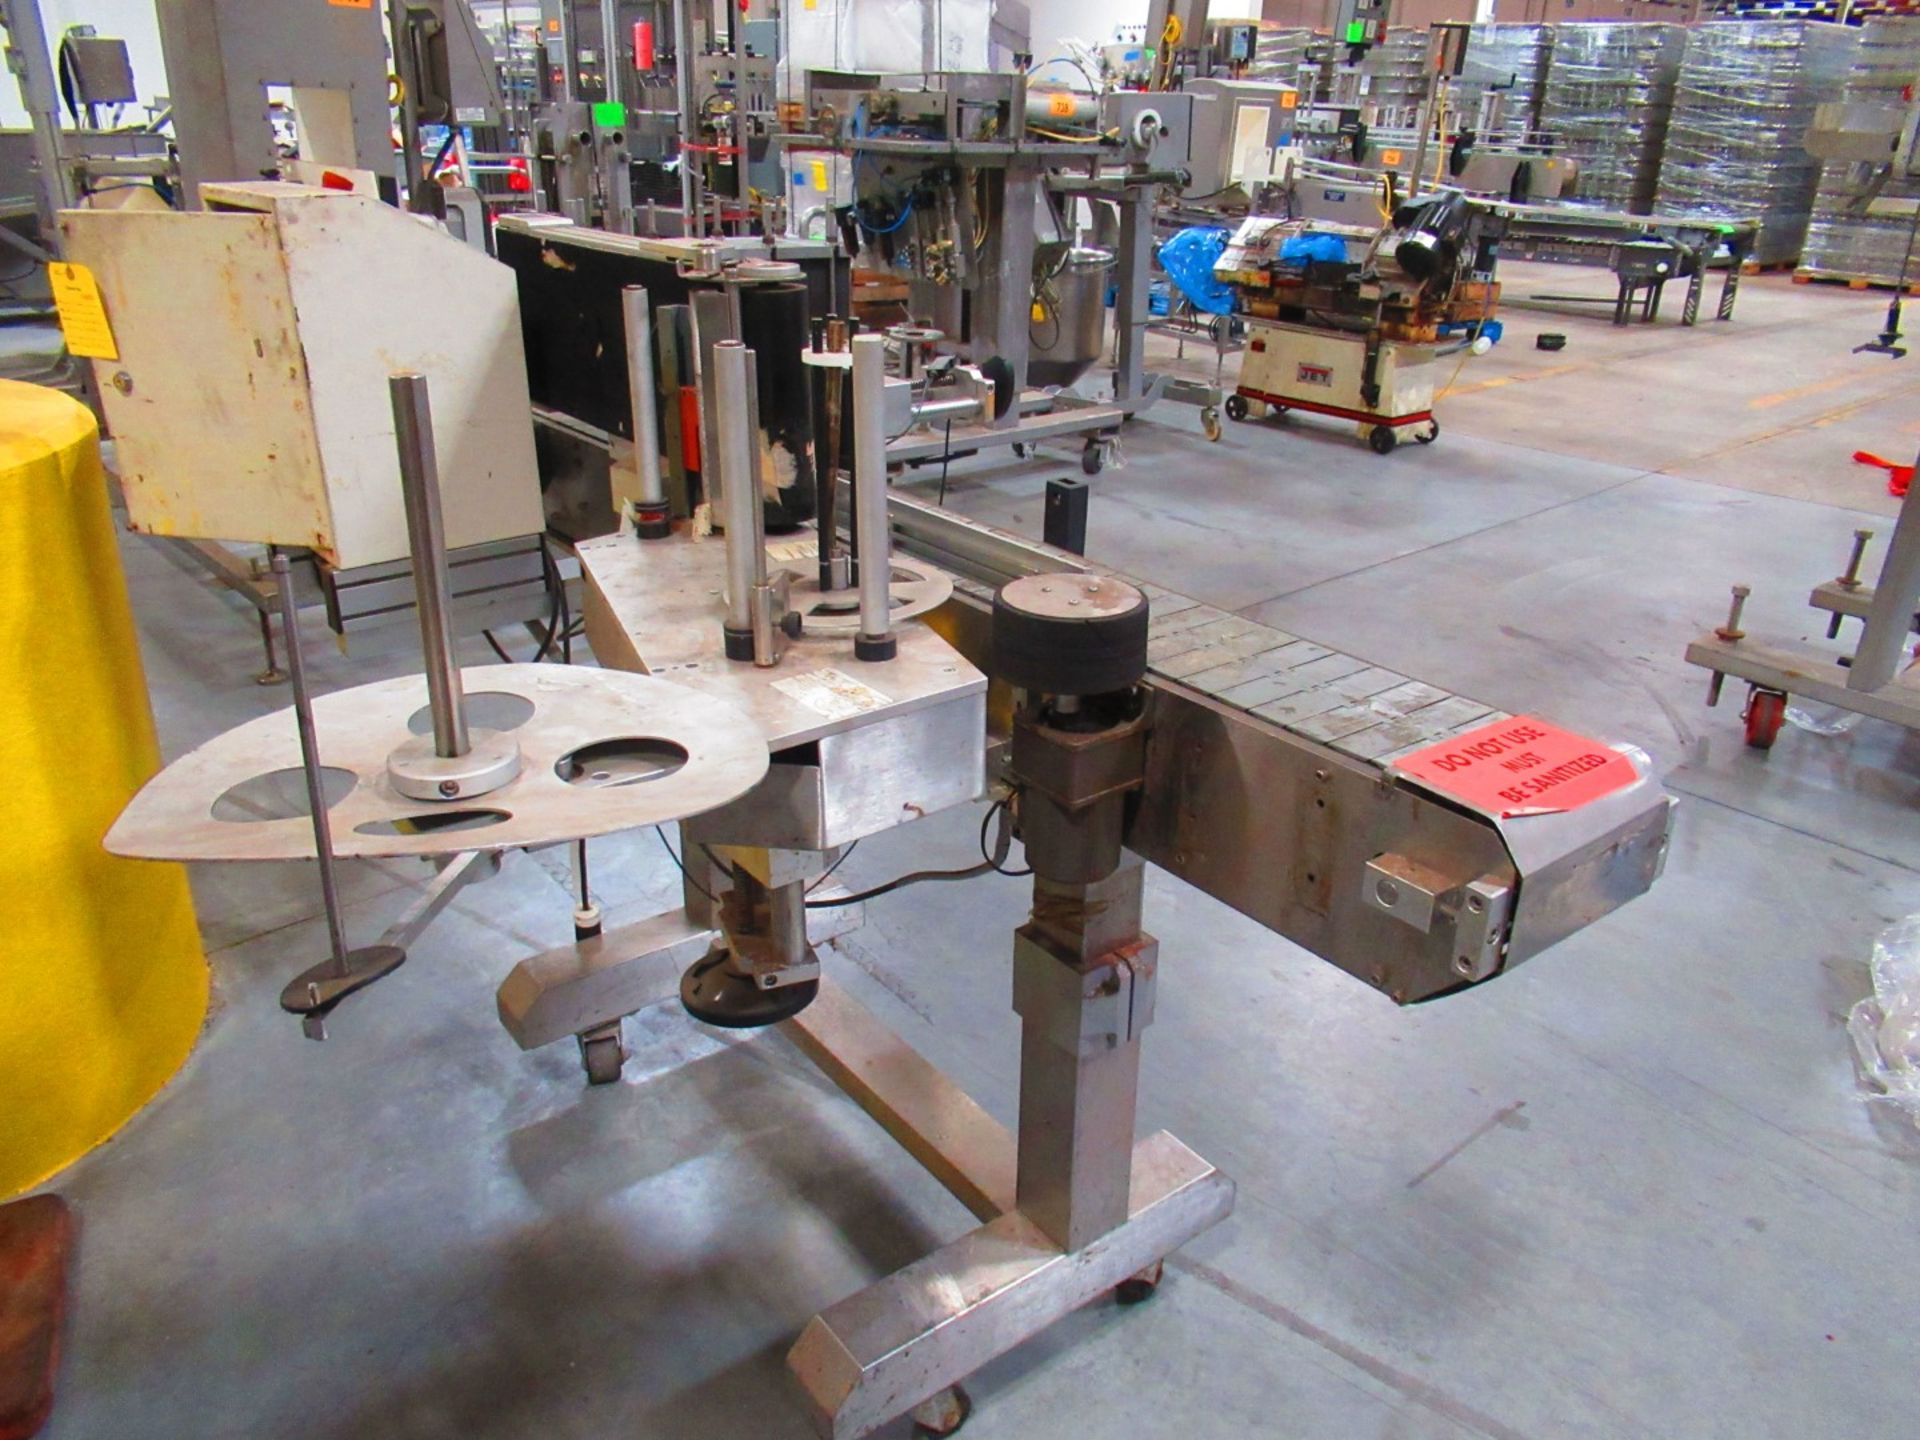 Labeler - Image 4 of 4